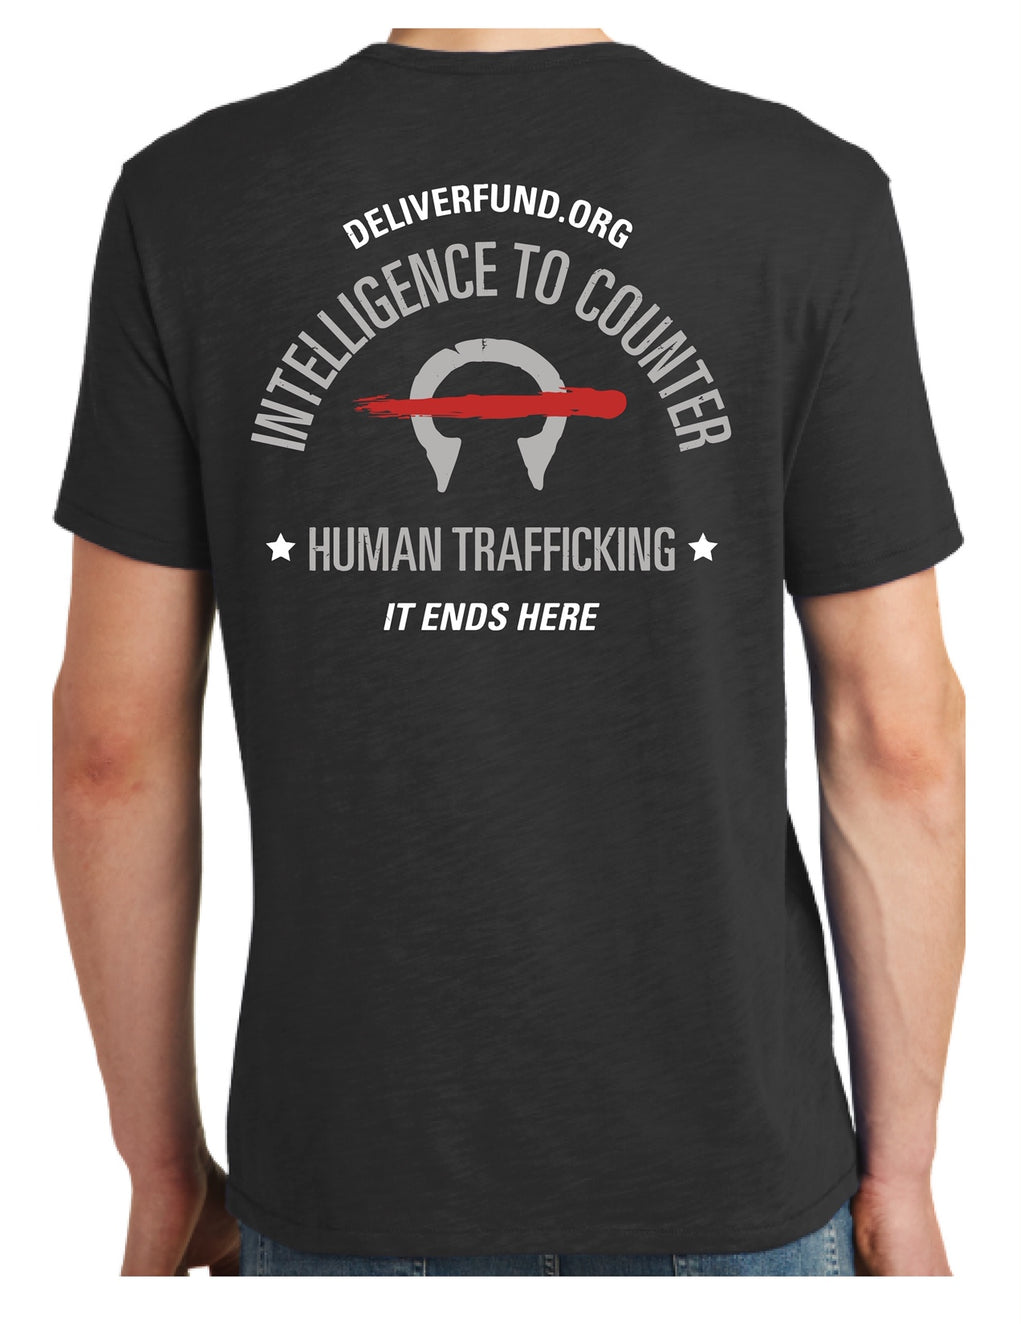 Men's Intelligence to Counter Human Trafficking T-Shirt